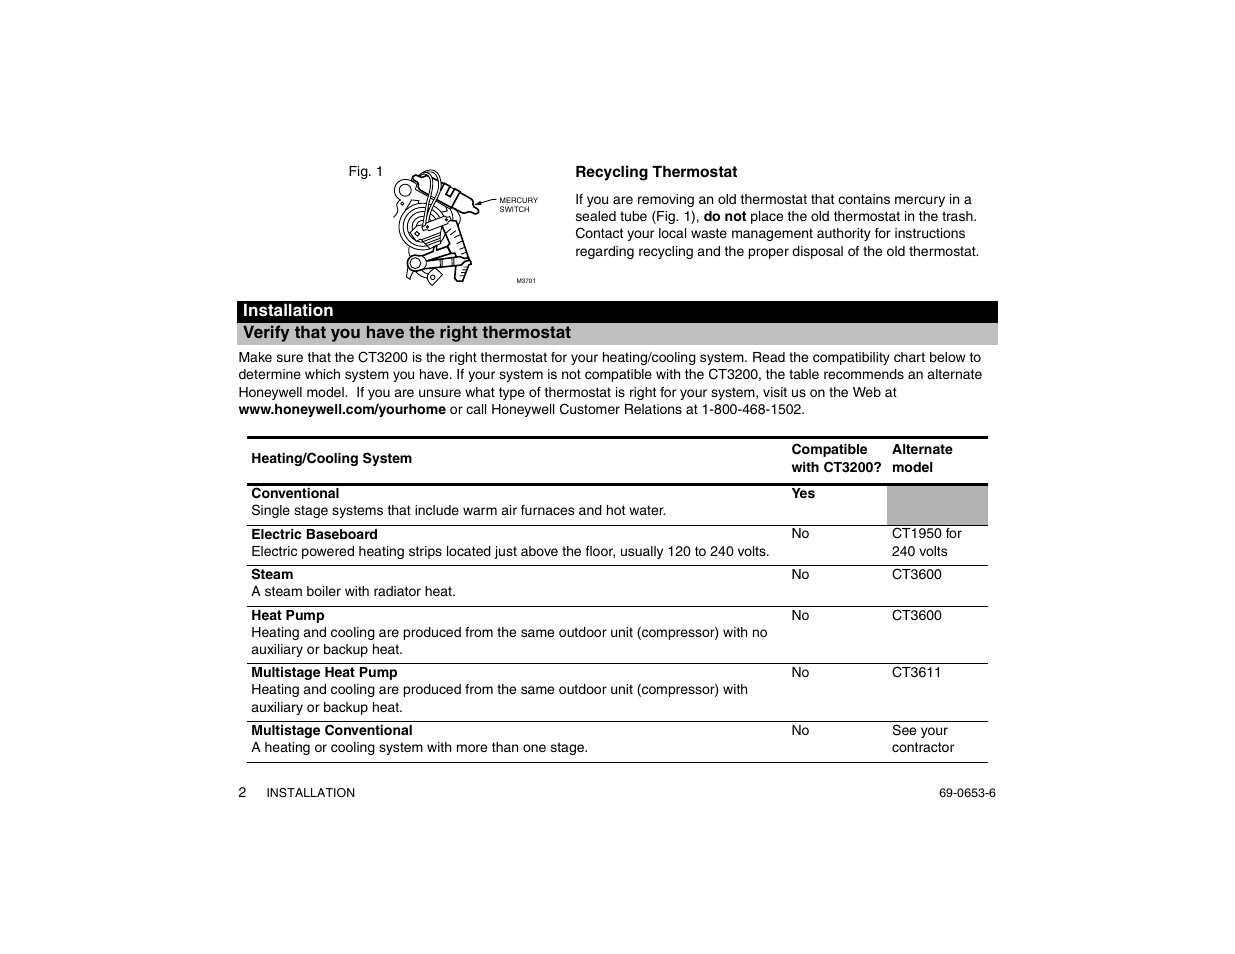 Multi stage heating and cooling - Verify That You Have The Right Thermostat Recycling Thermostat Honeywell Magicstat Ct3200 User Manual Page 2 24